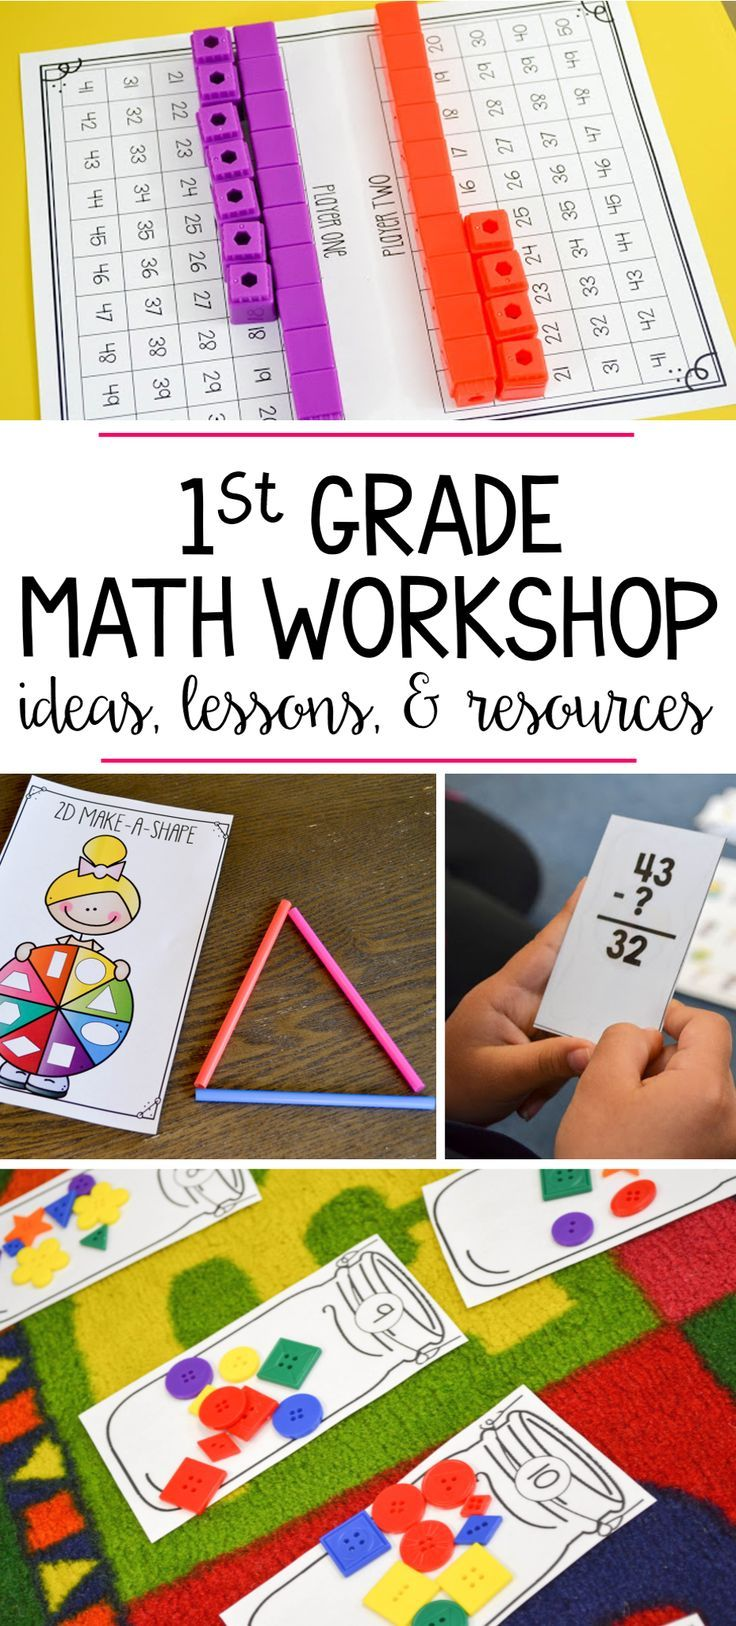 Tons of guided math workshop activities for a first grade classroom! Unit includes detailed lesson plans, hands on games, and so much more for the whole year!